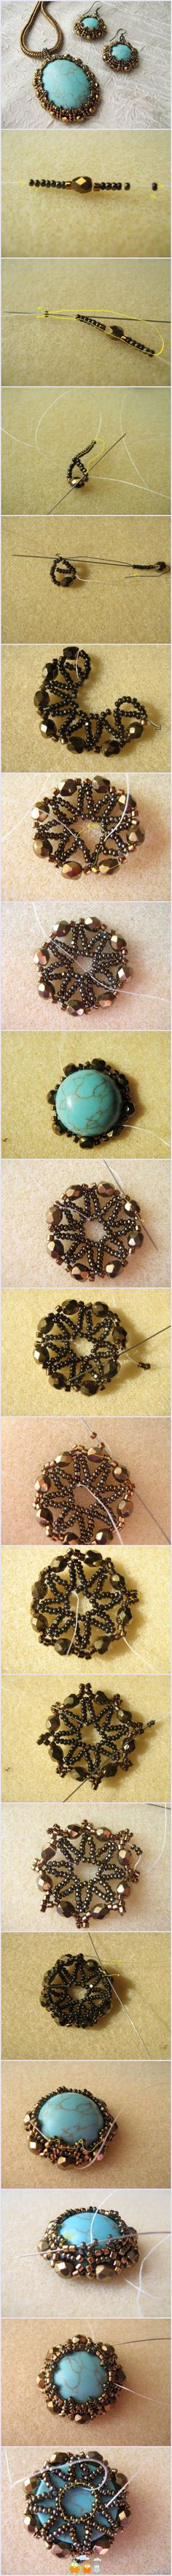 tutorial for cabochon